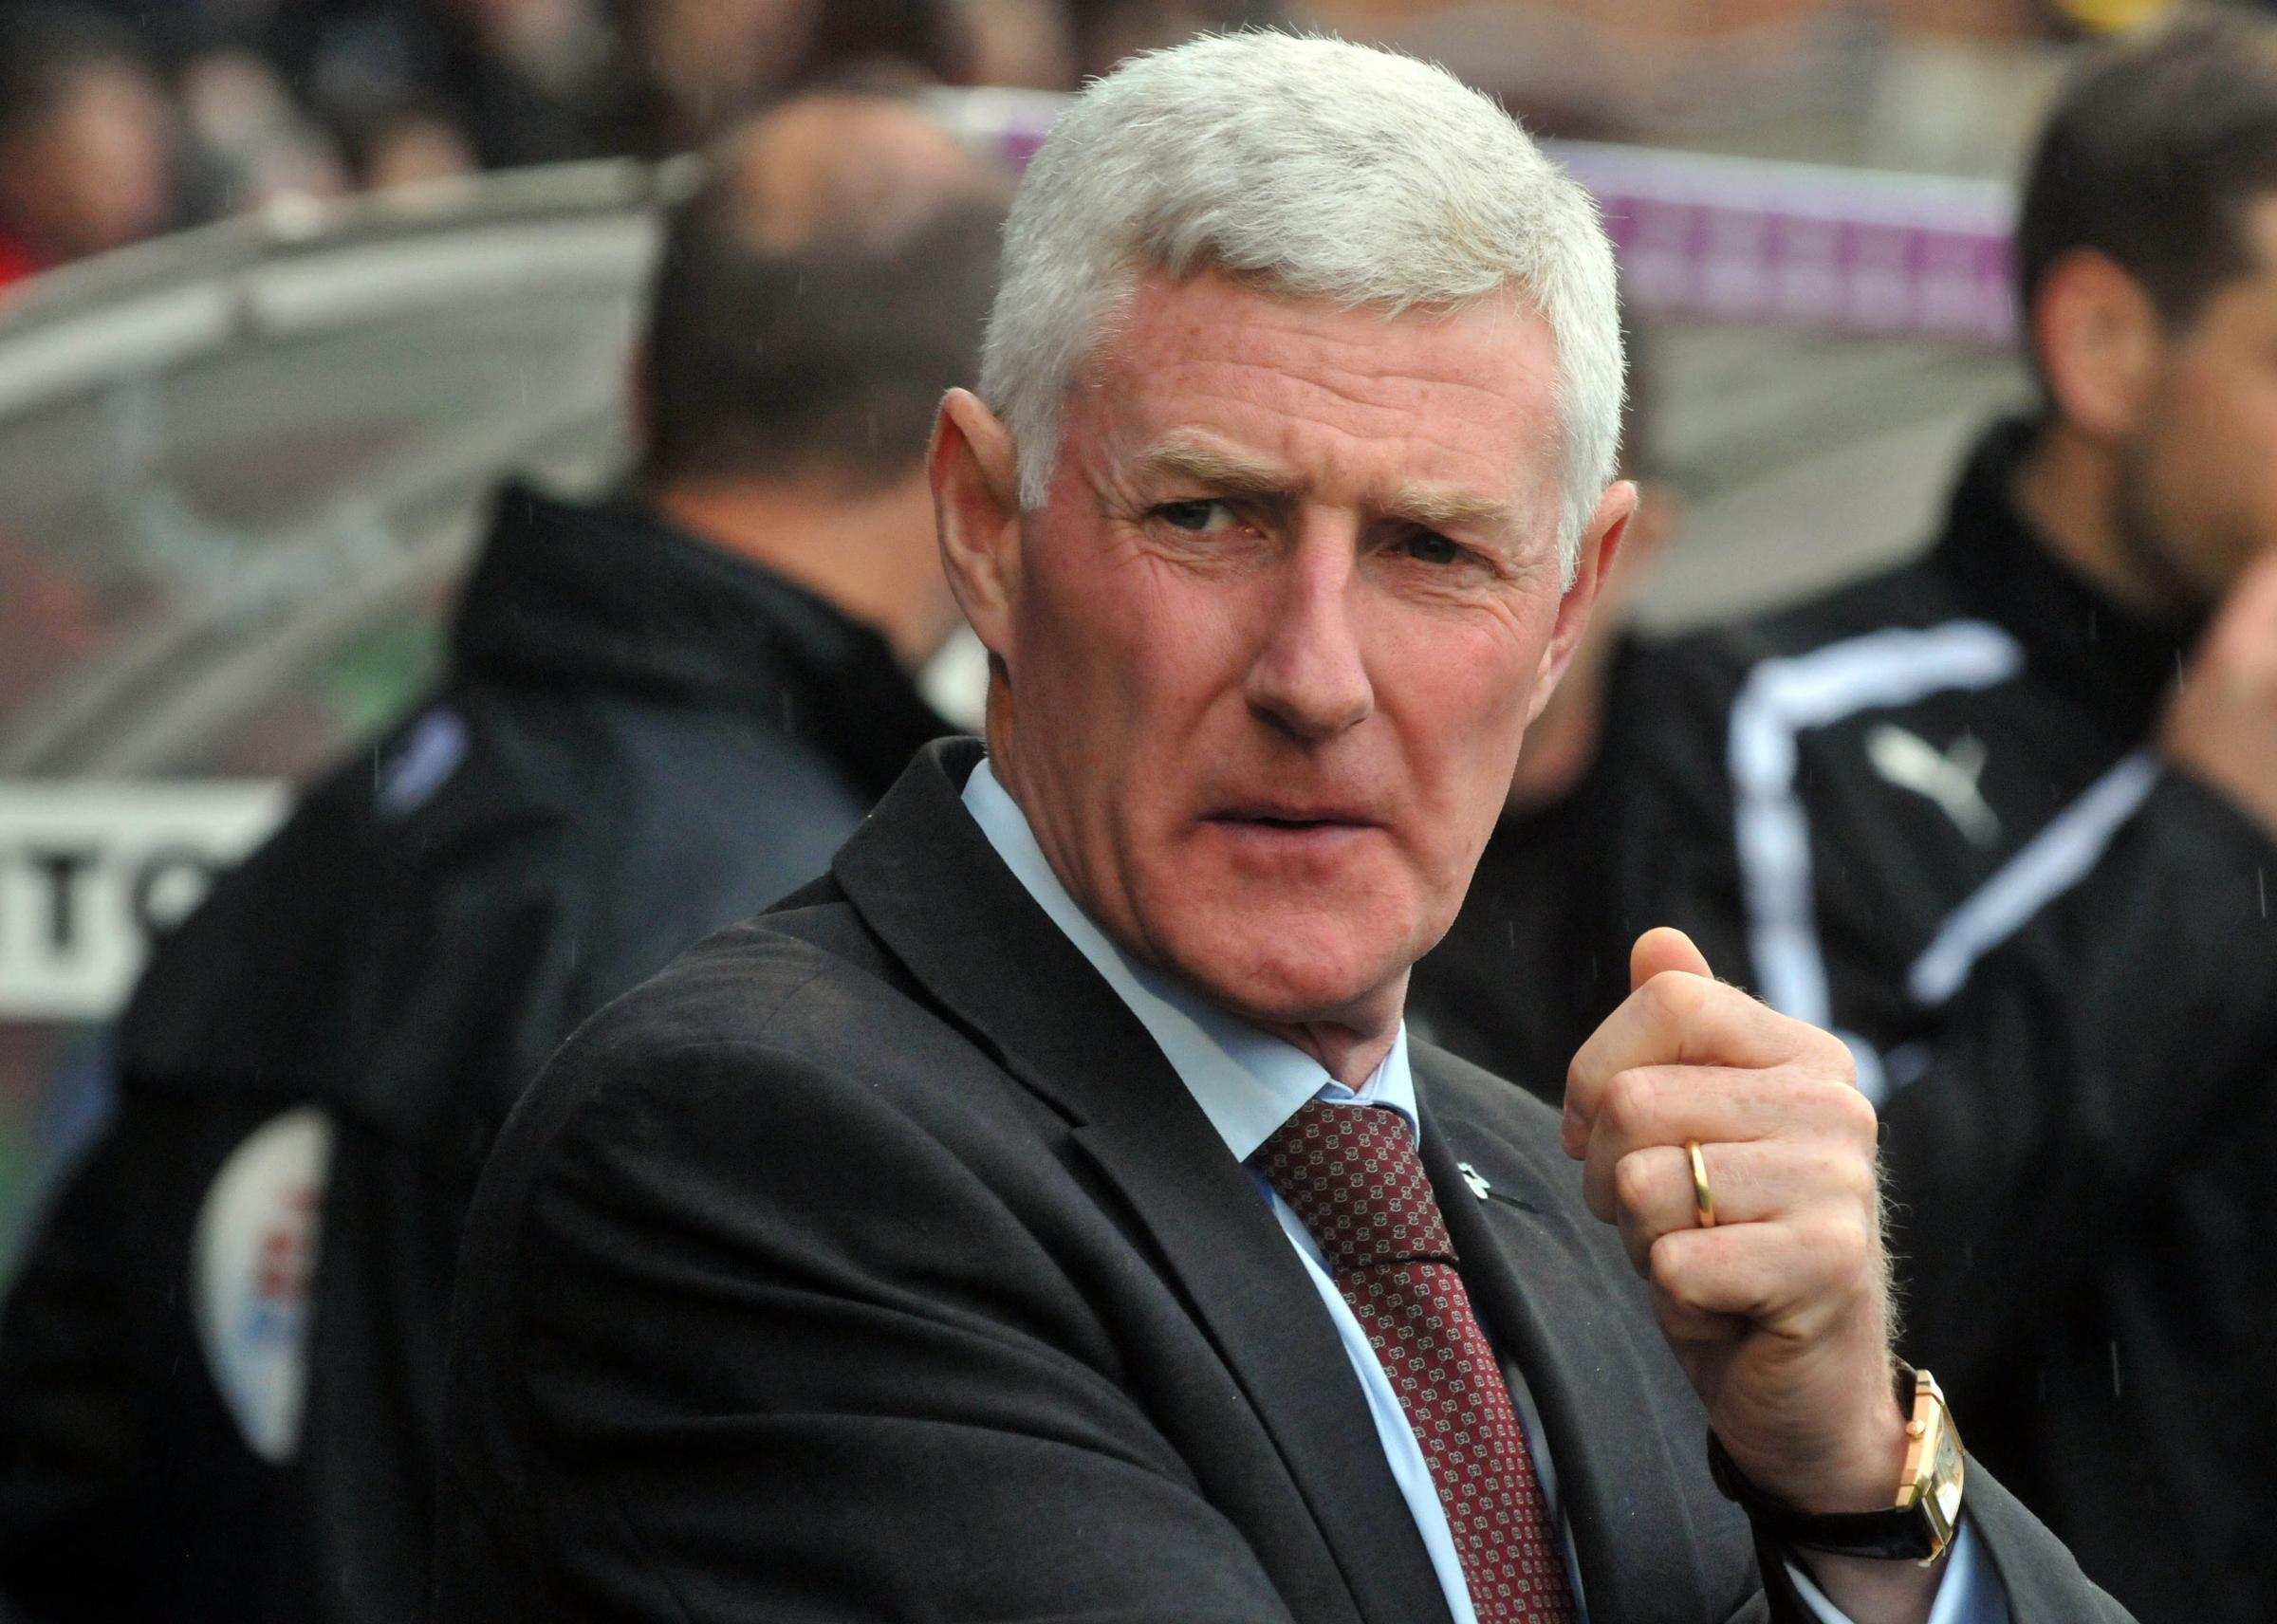 York City manager Nigel Worthington on the touchline during his side's 1-0 play-off defeat to Fleetwood